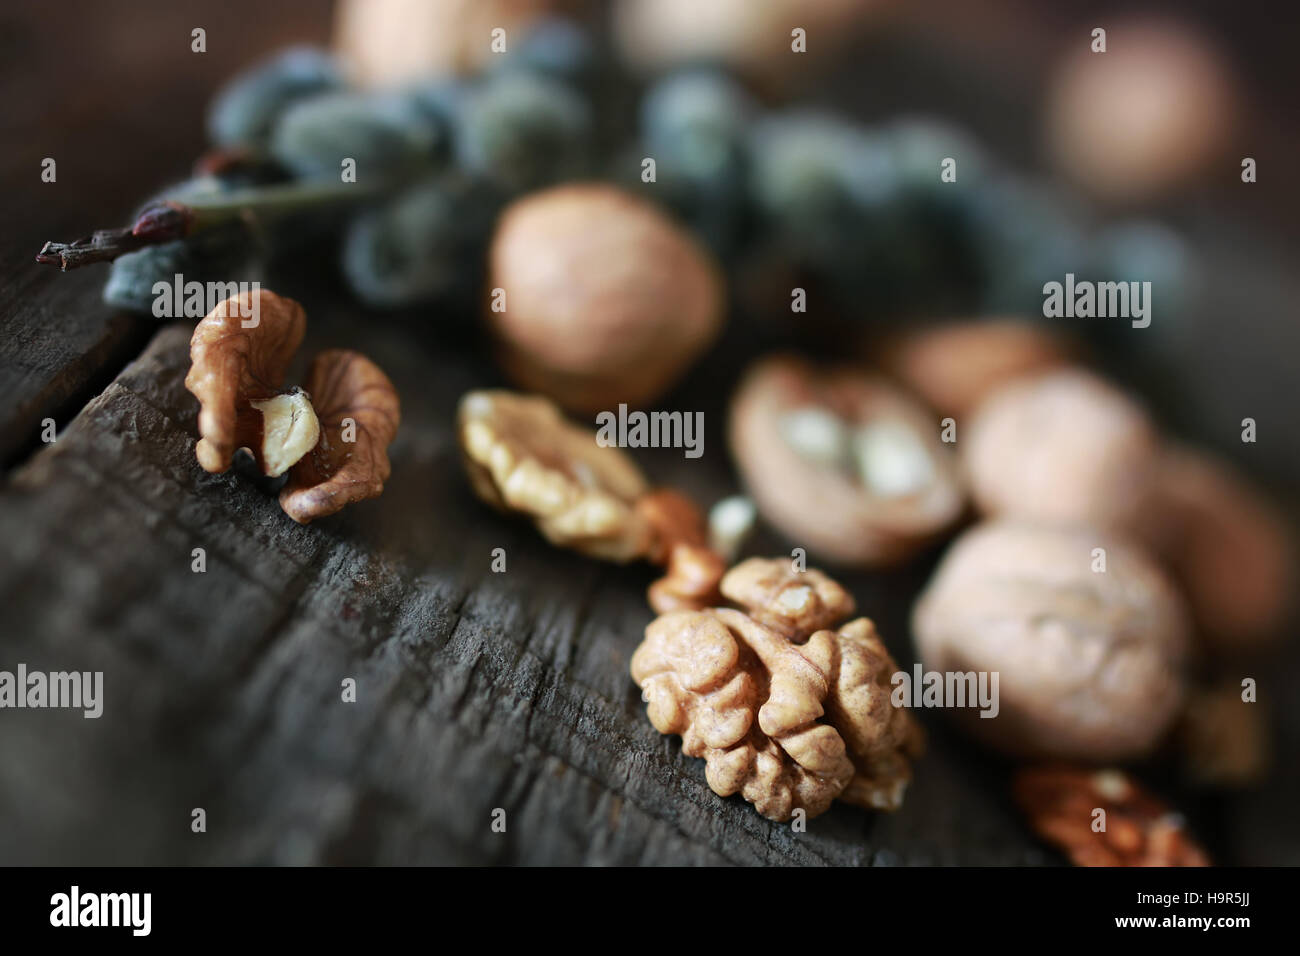 walnuts, whole and peeled - Stock Image